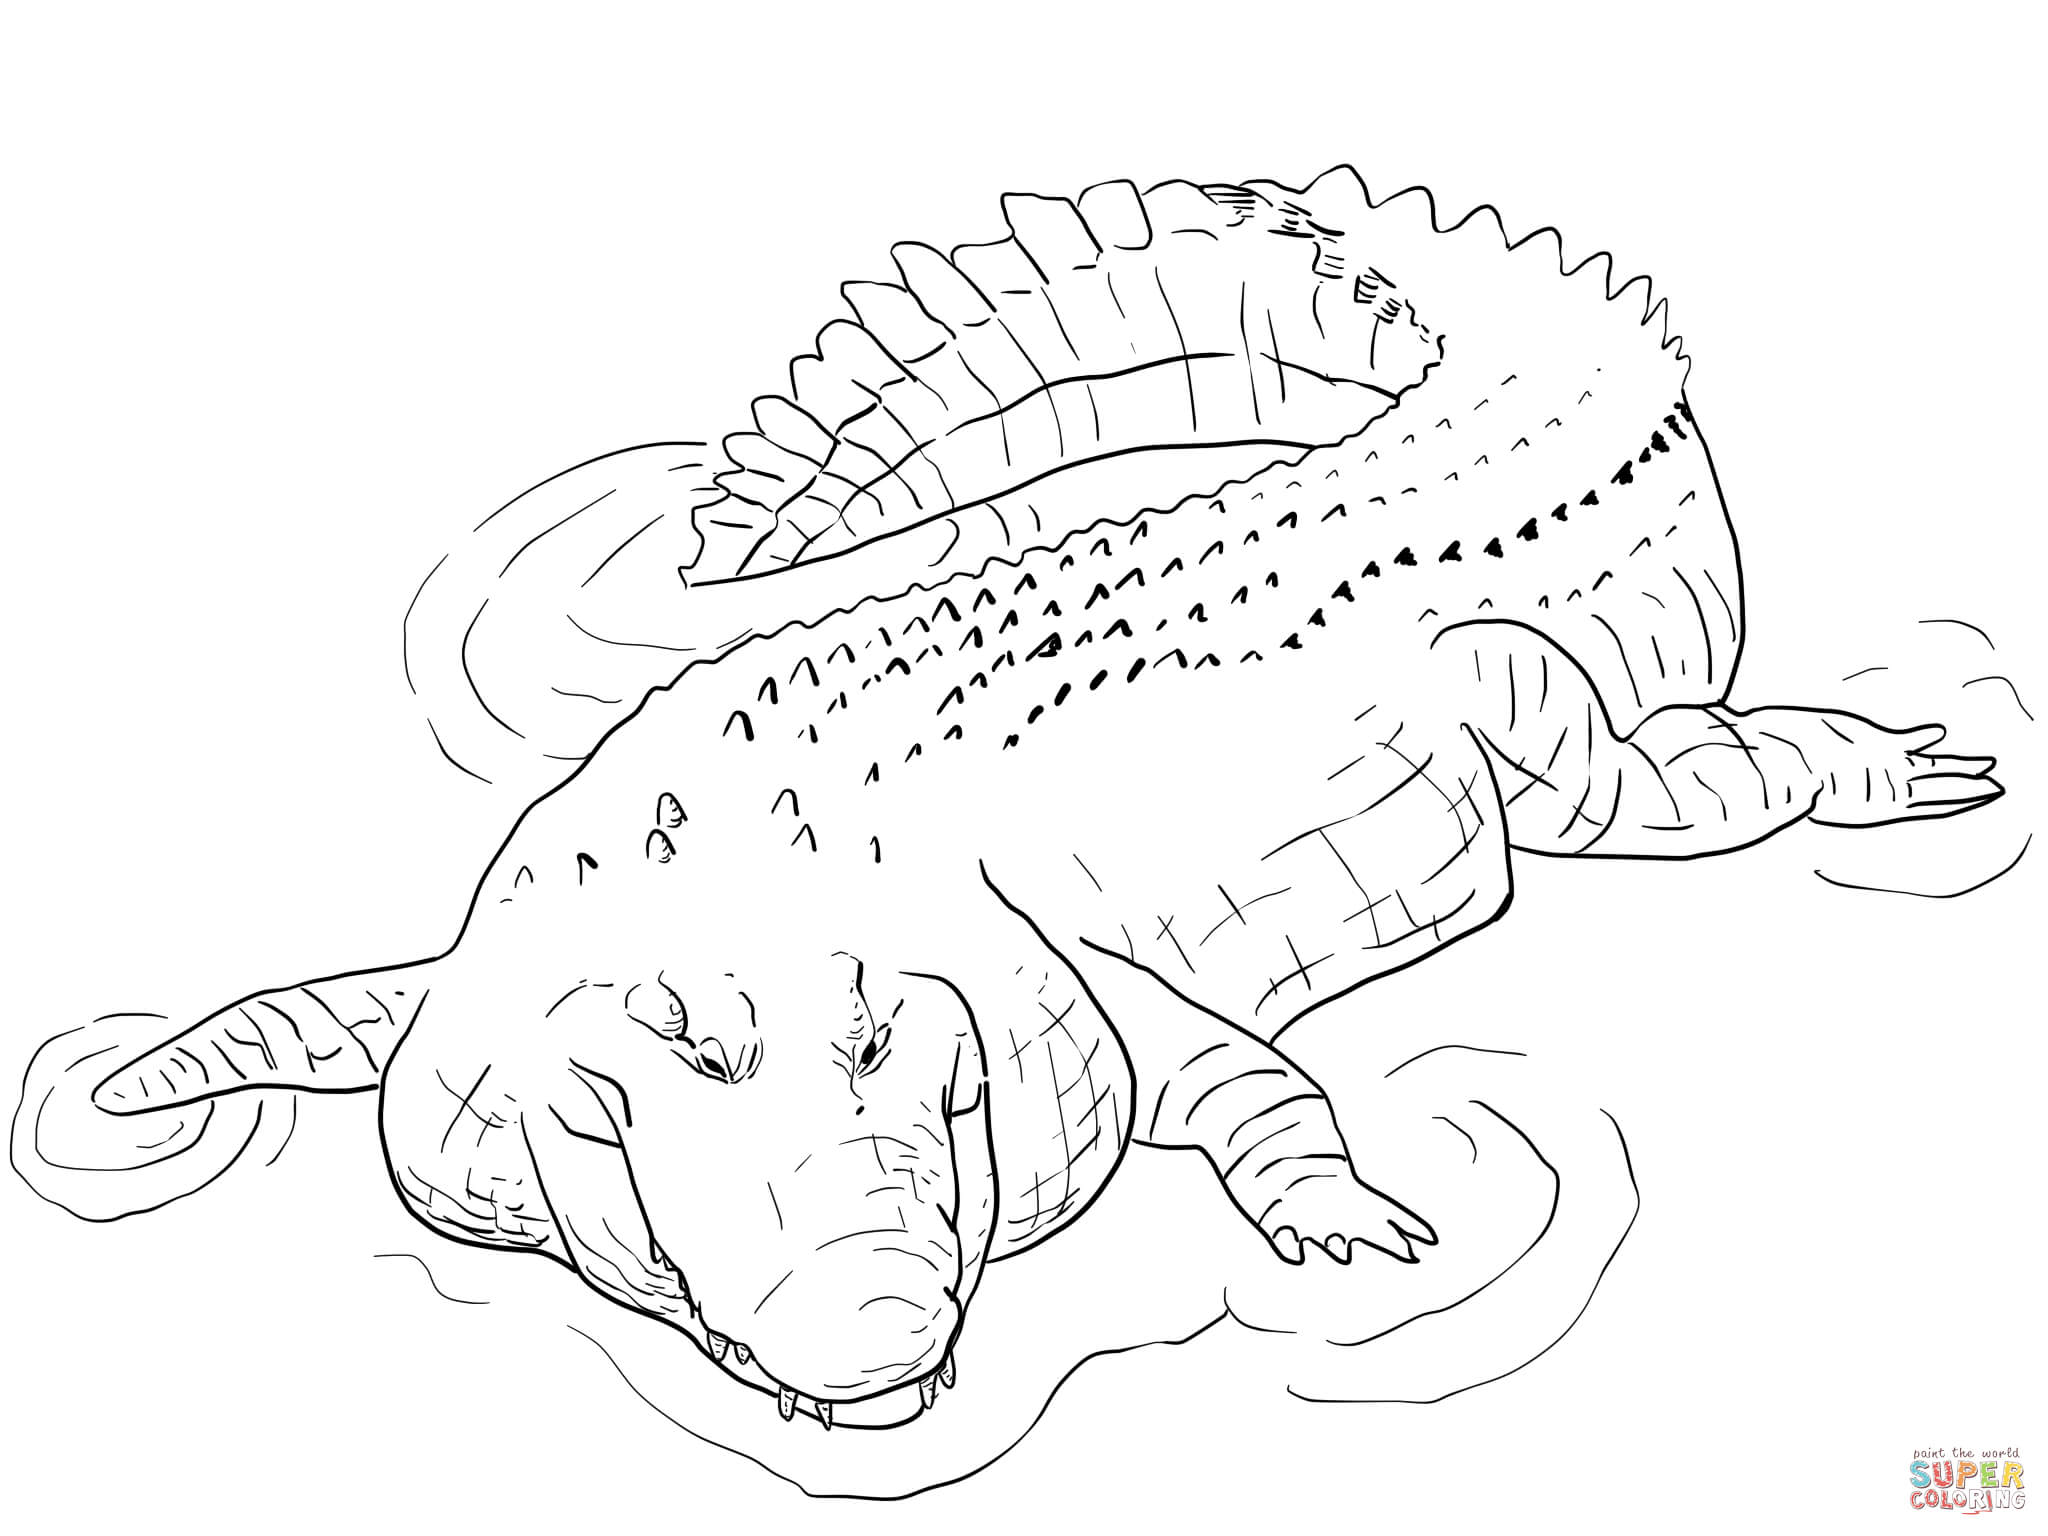 crocodile color crocodiles free colouring pages color crocodile